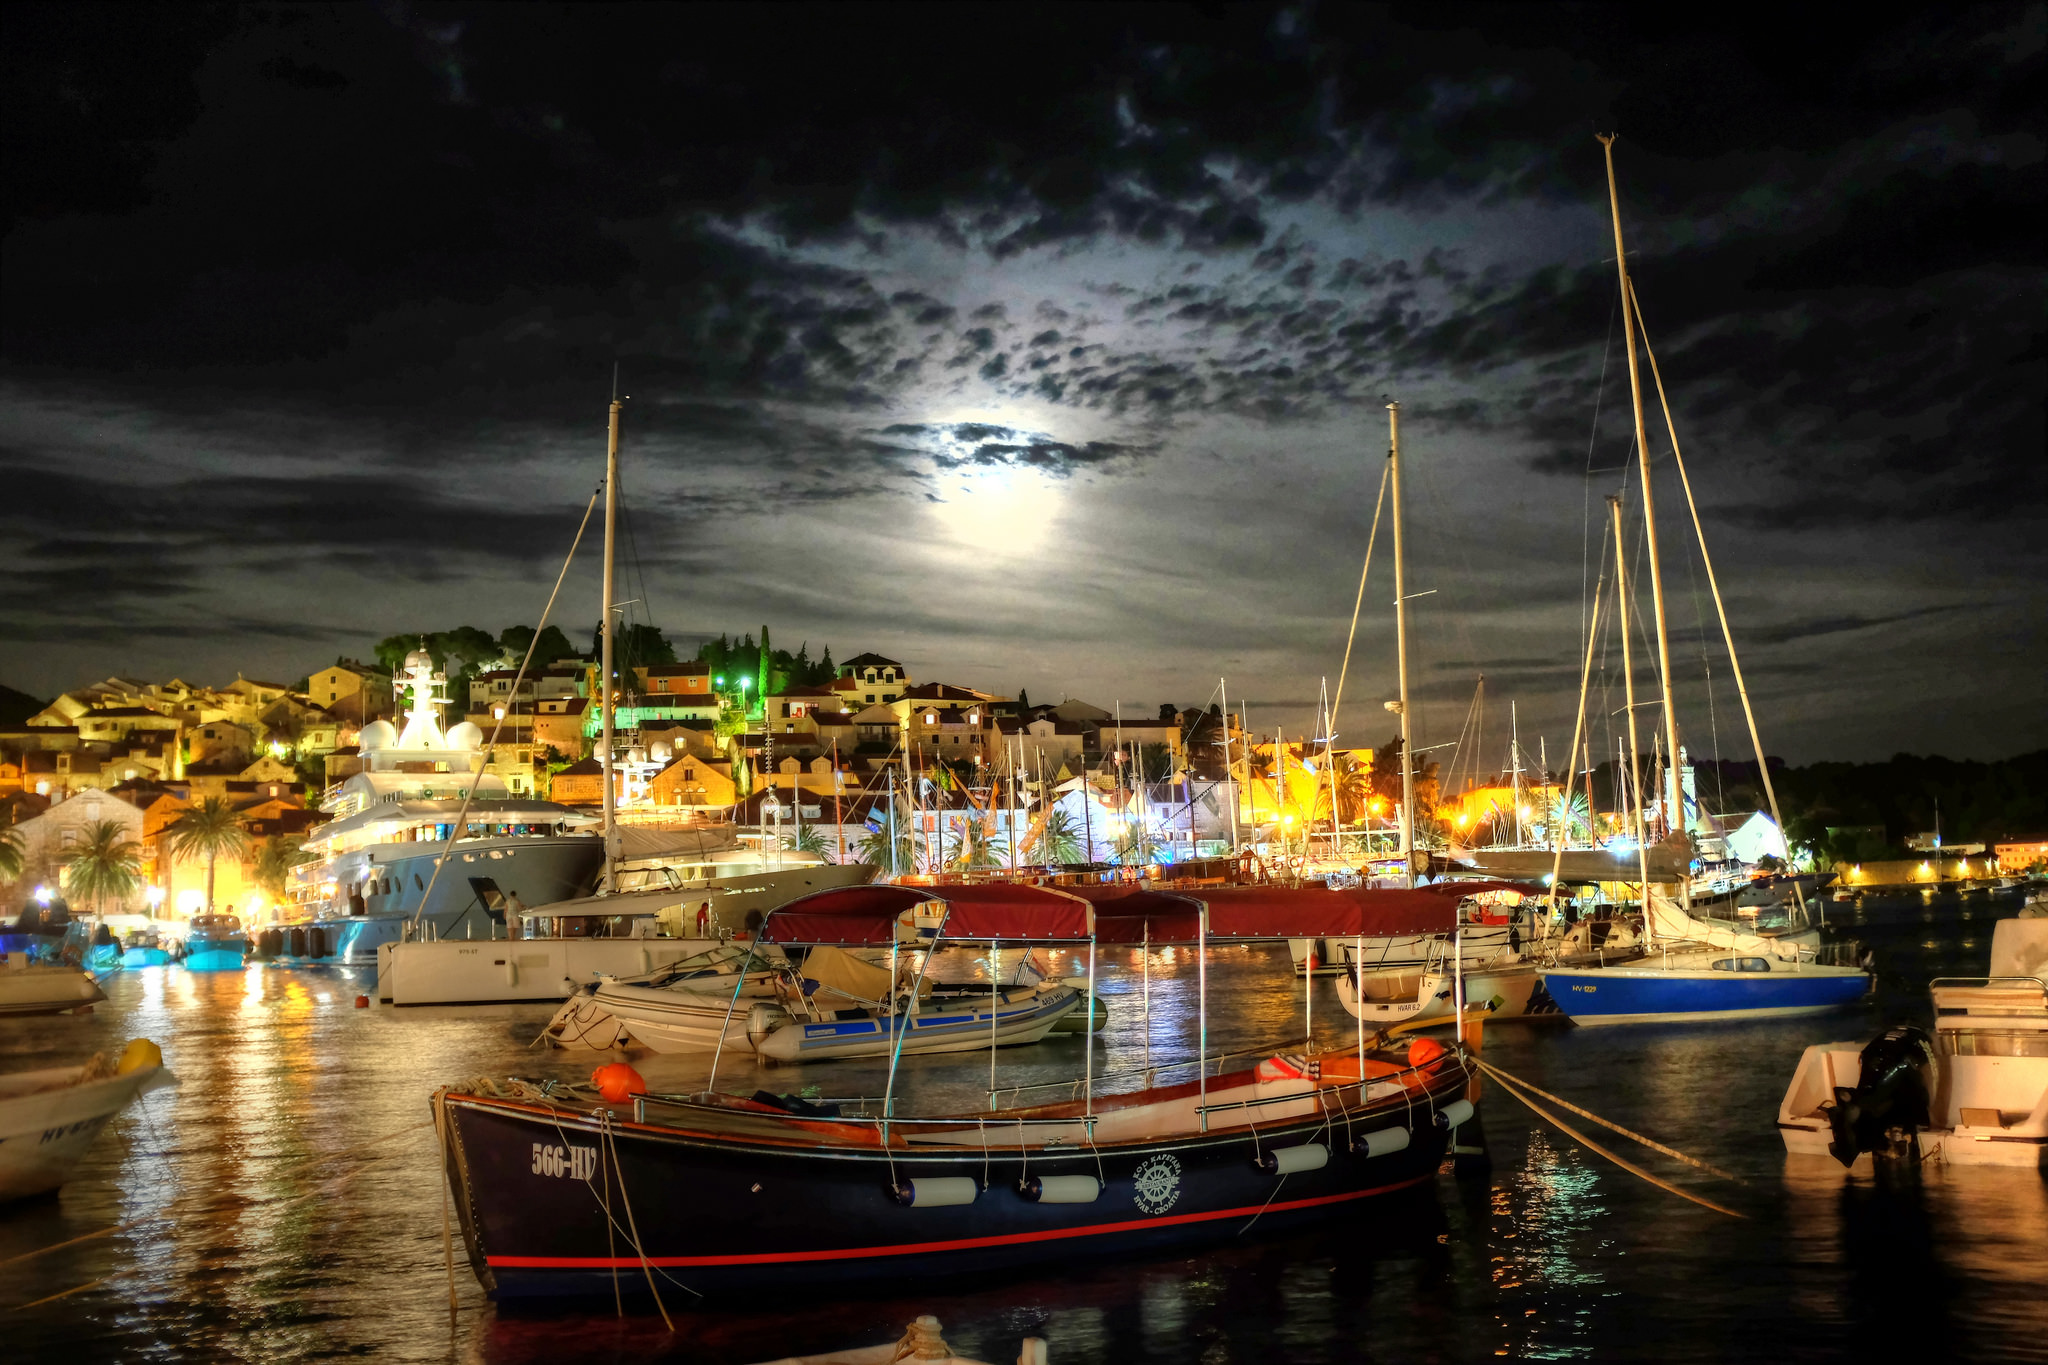 Hvar by night - Photo by Min Zhou - https://www.flickr.com/photos/125945909@N05/